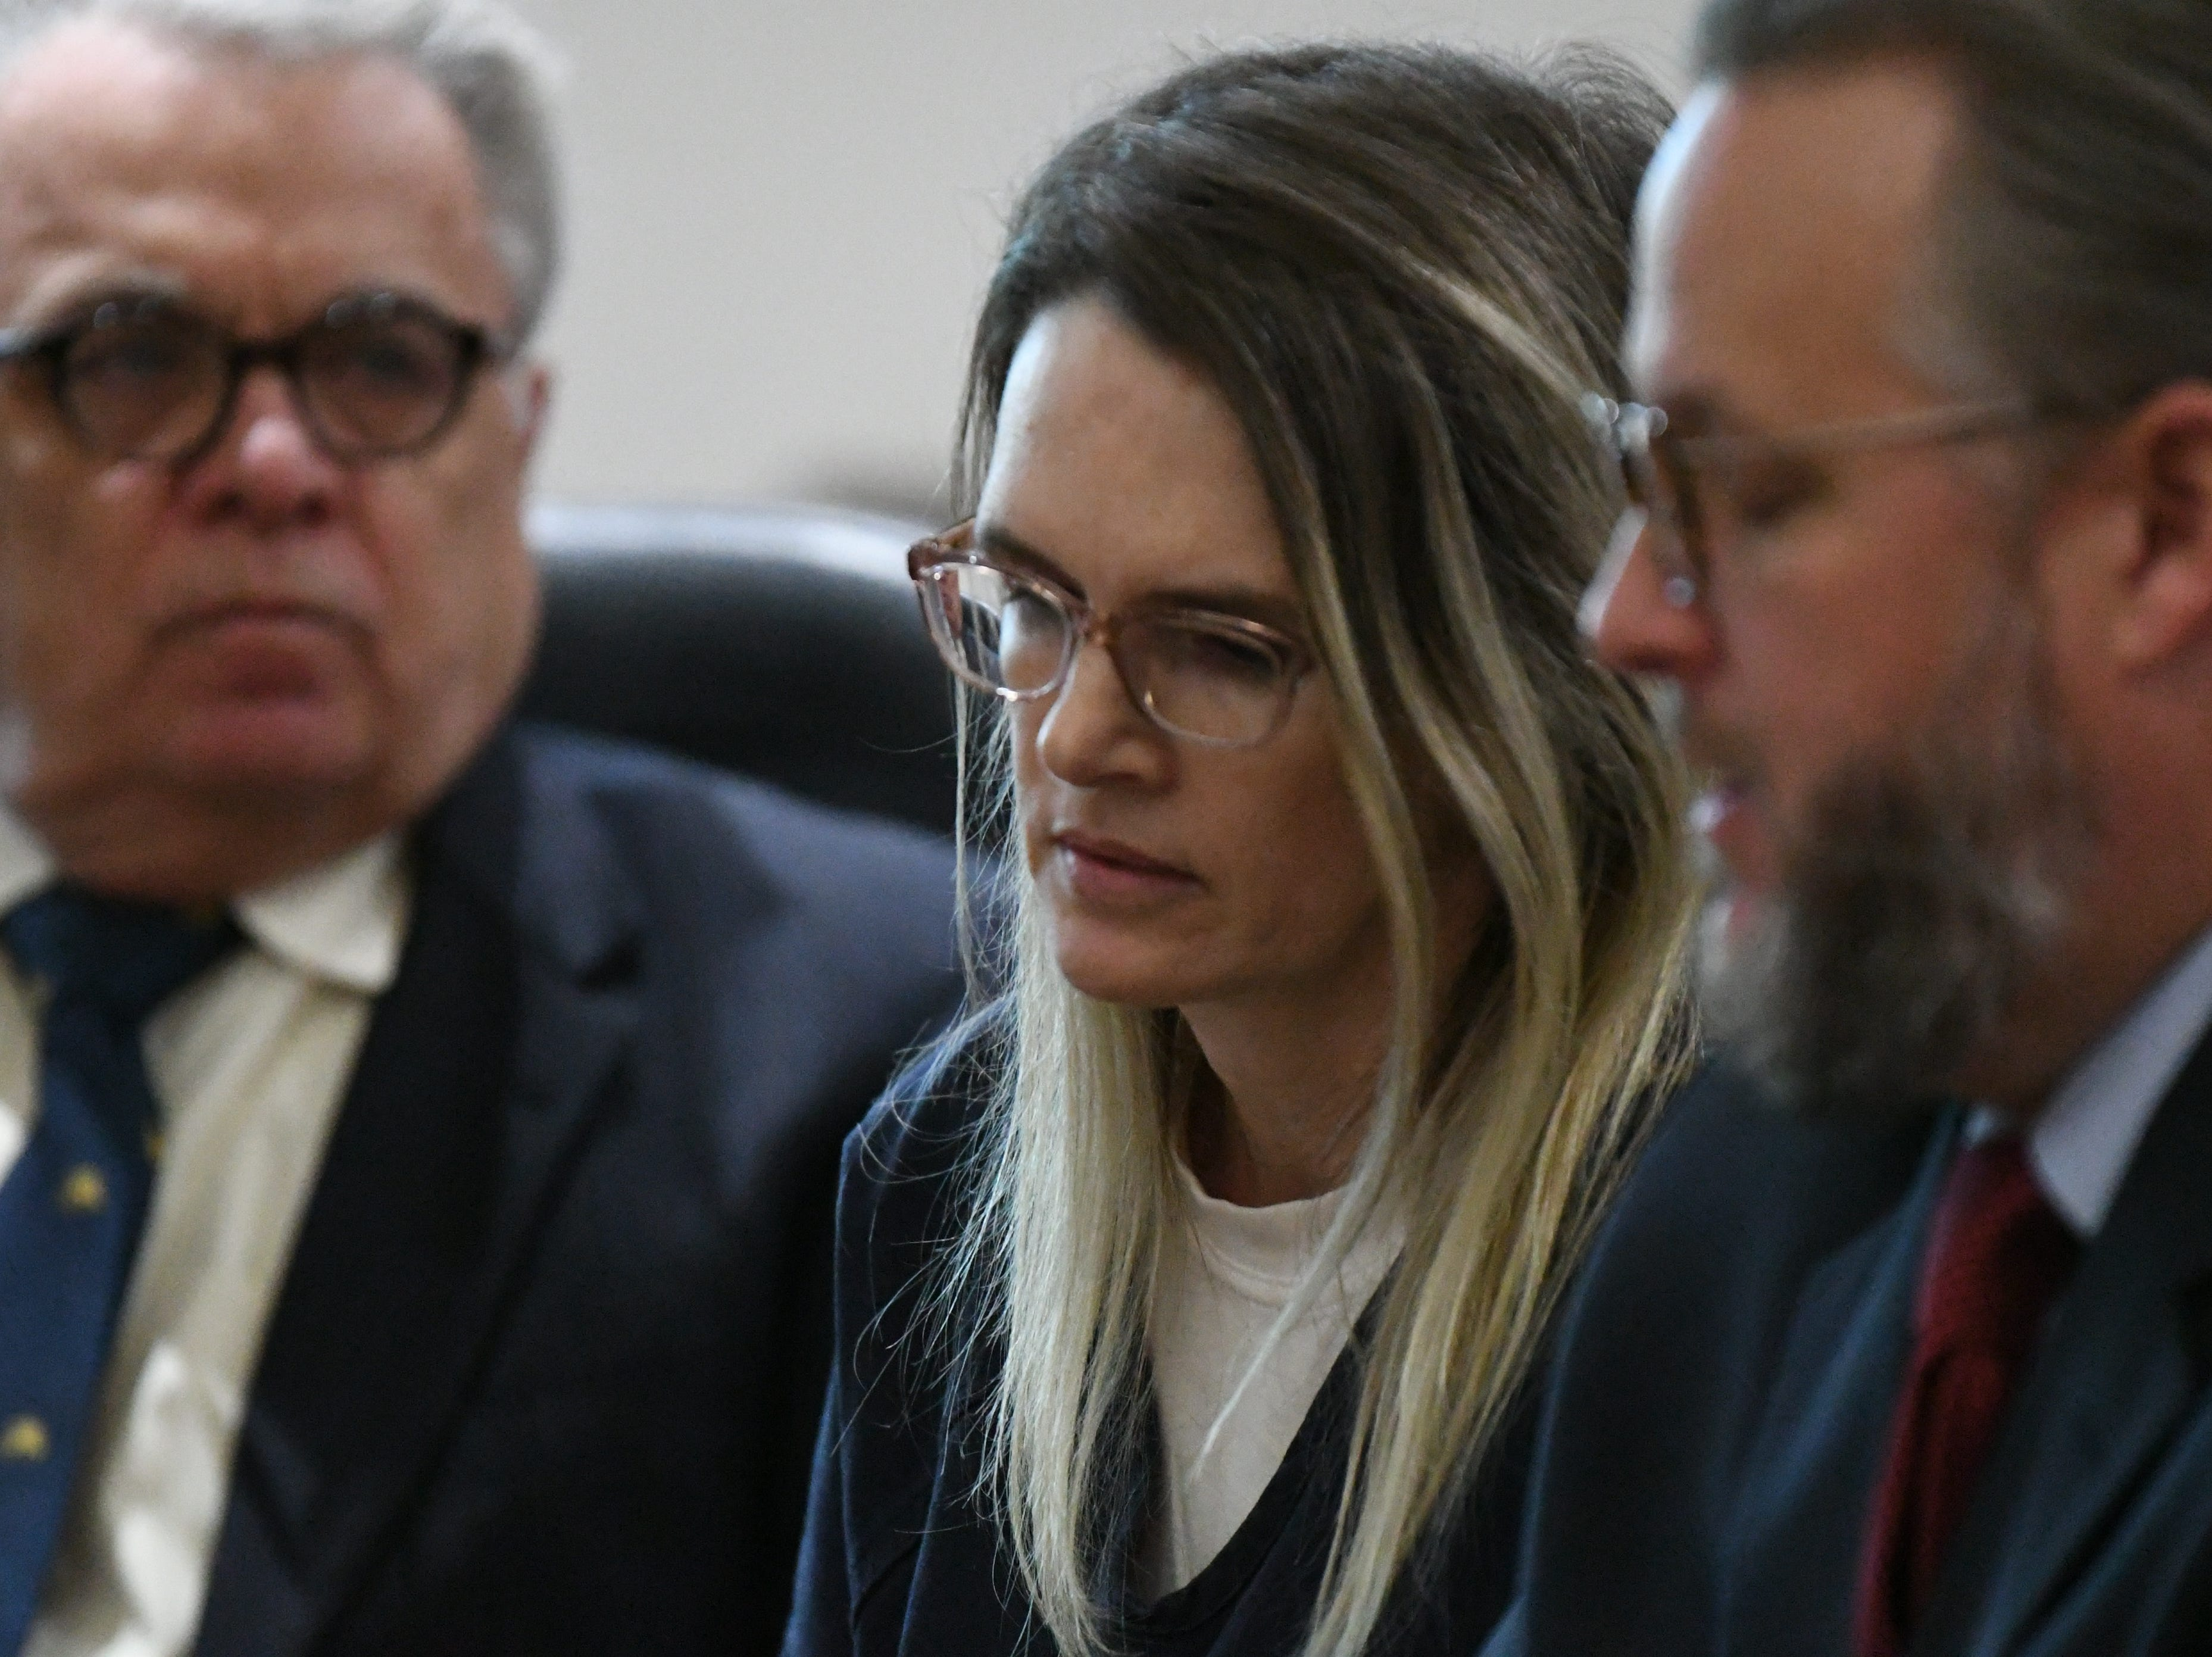 Denise Williams sits between her defense attorneys before her sentencing on Wednesday Feb. 6, 2019, for the murder of her husband Mike Williams. Williams was sentenced to life in prison plus thirty years.